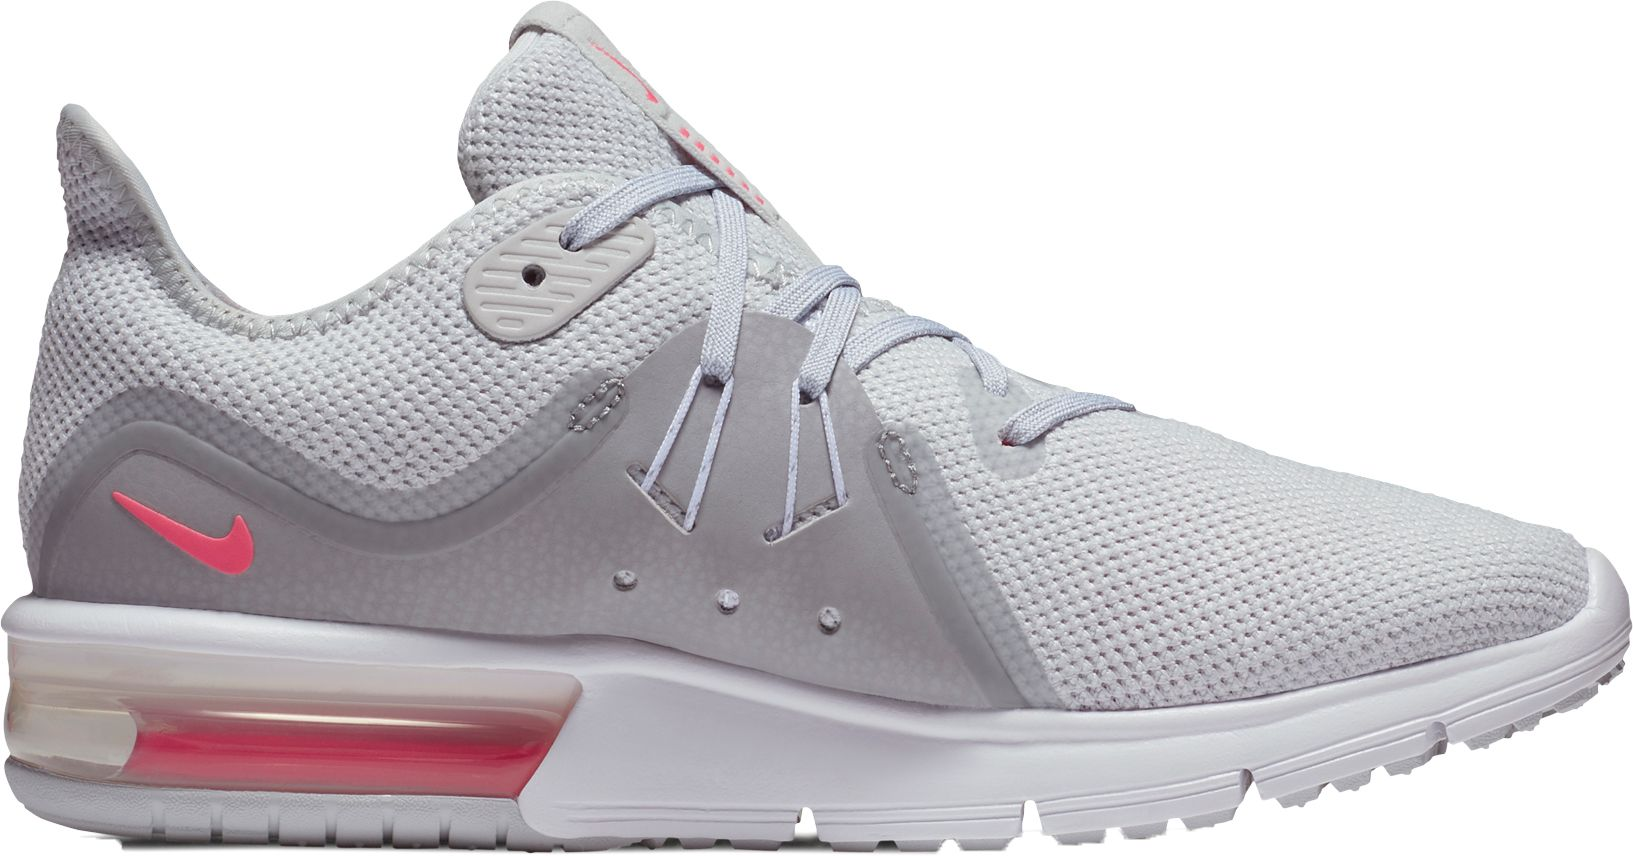 Product Image · Nike Women's Air Max Sequent 3 Running Shoes